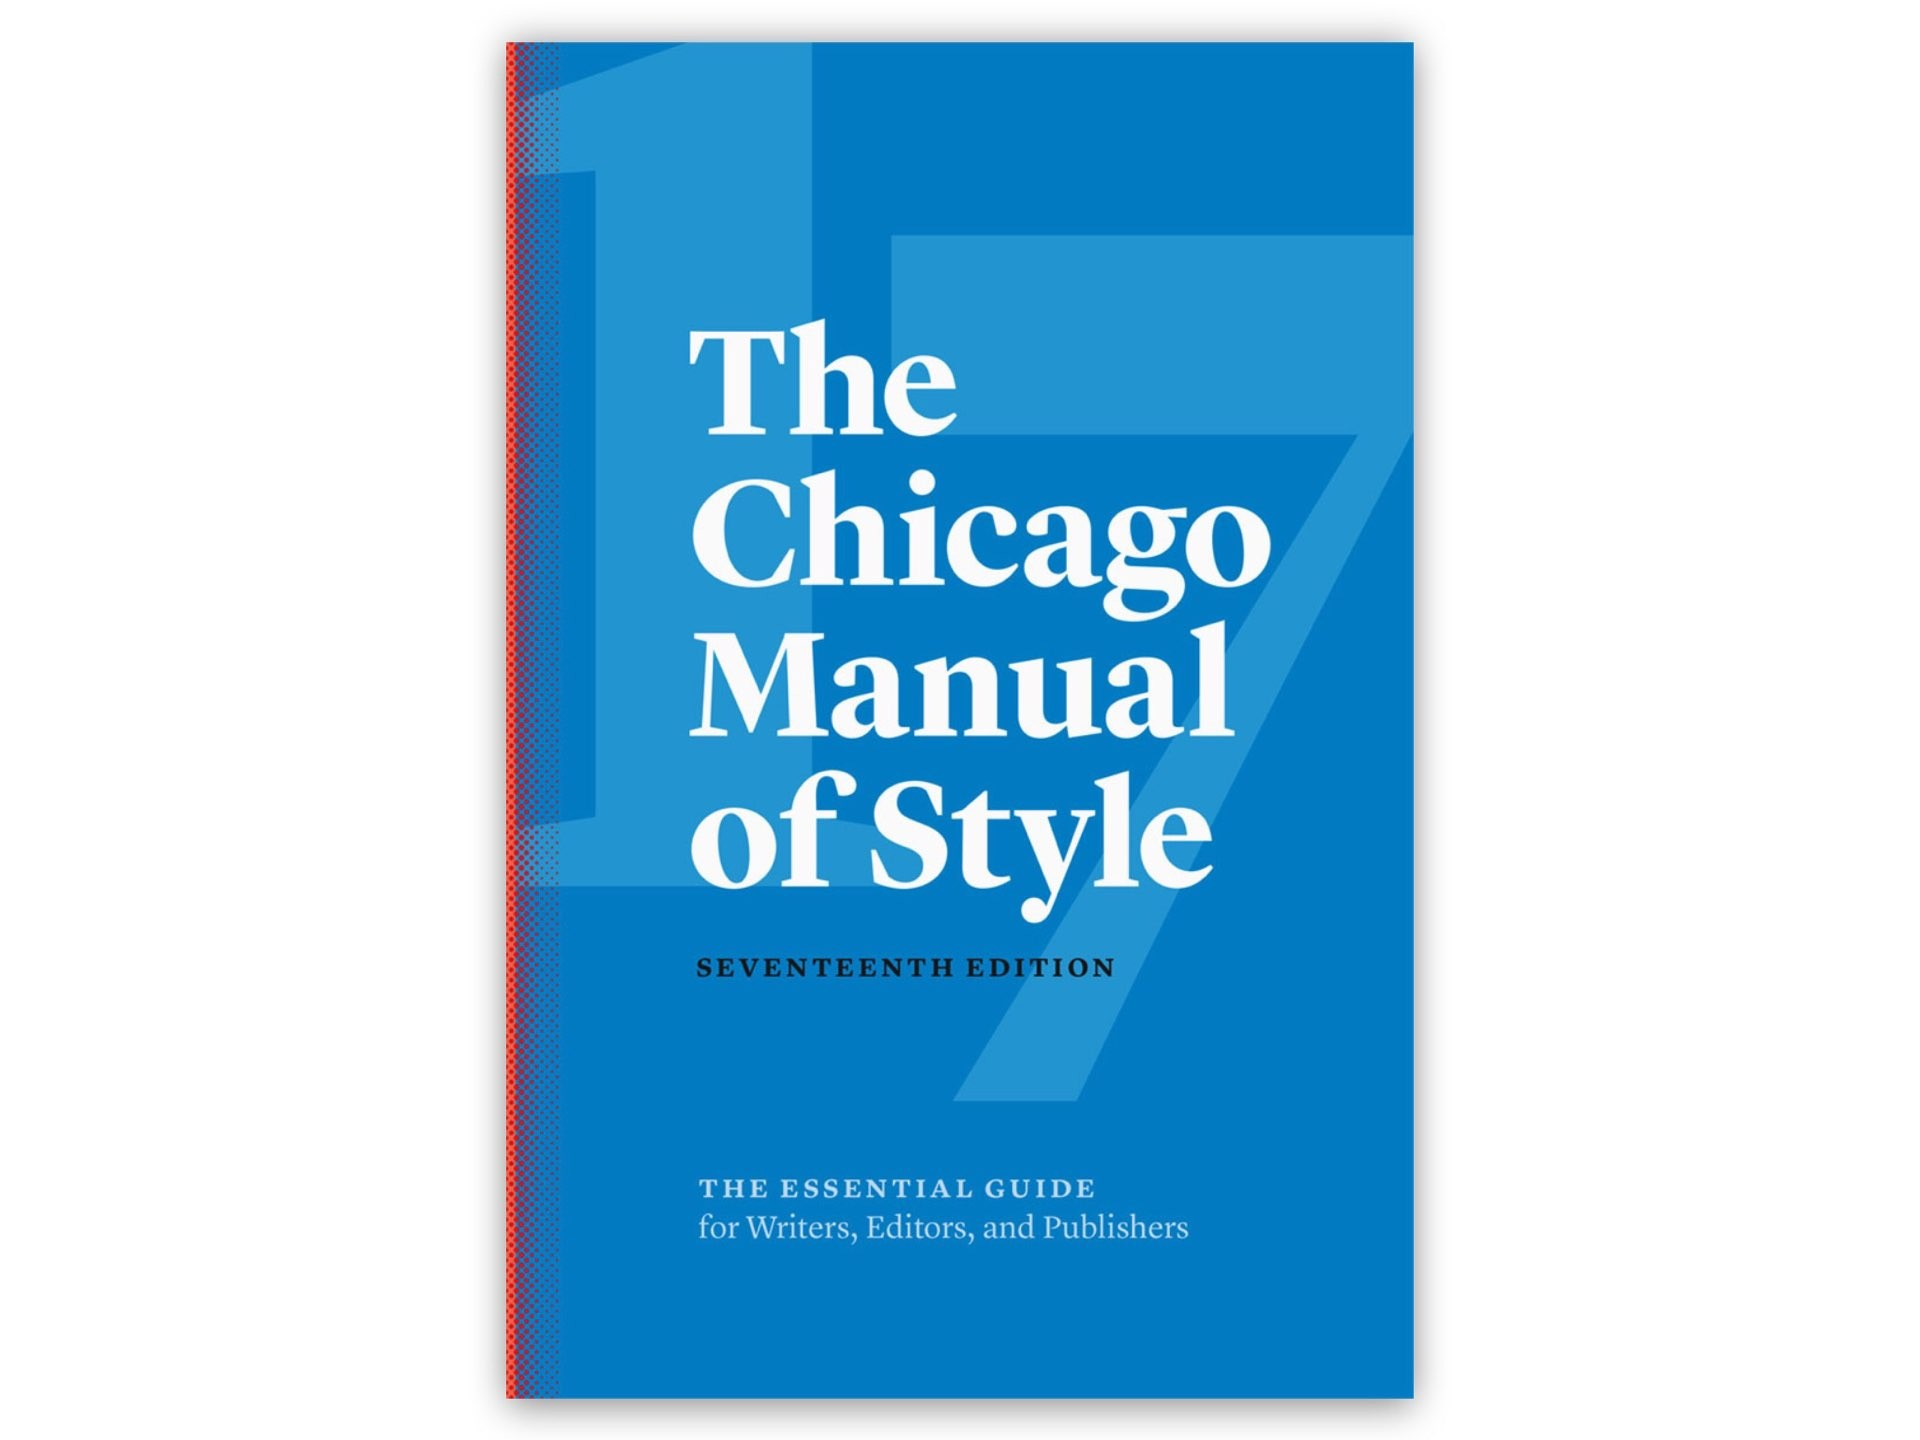 The Chicago Manual of Style by the University of Chicago Press Editorial Staff.